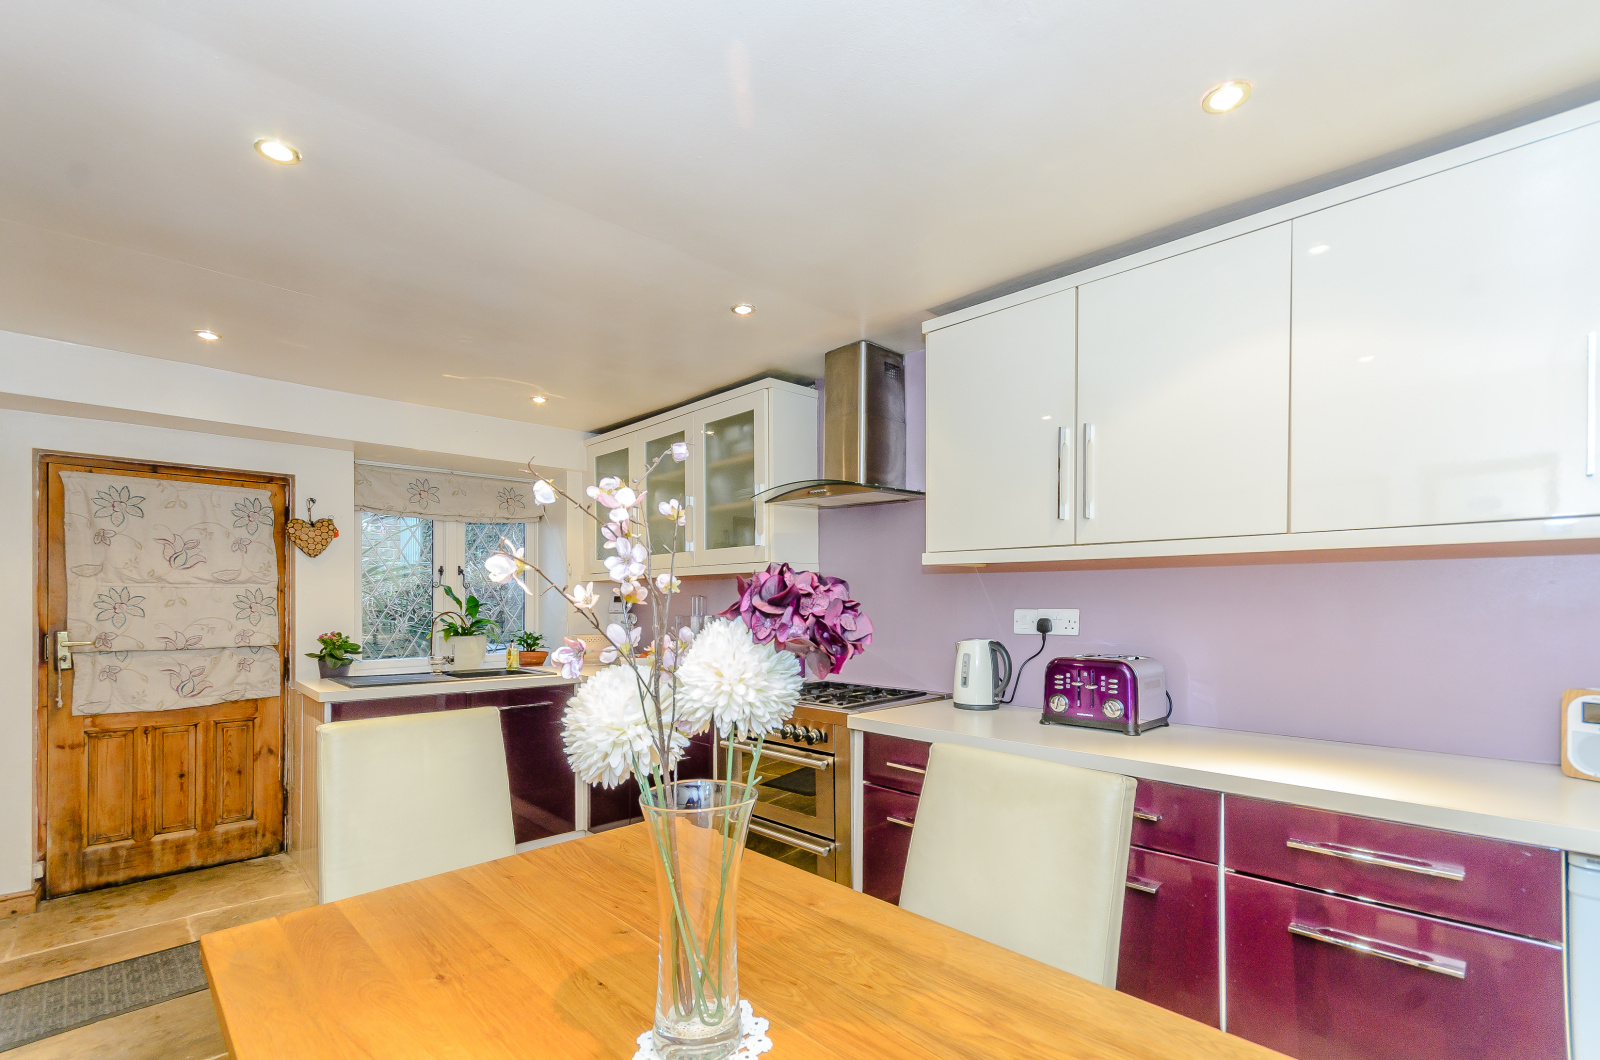 Cottage for sale in Main Street, Farnhill, Keighley, BD20 from Emoov